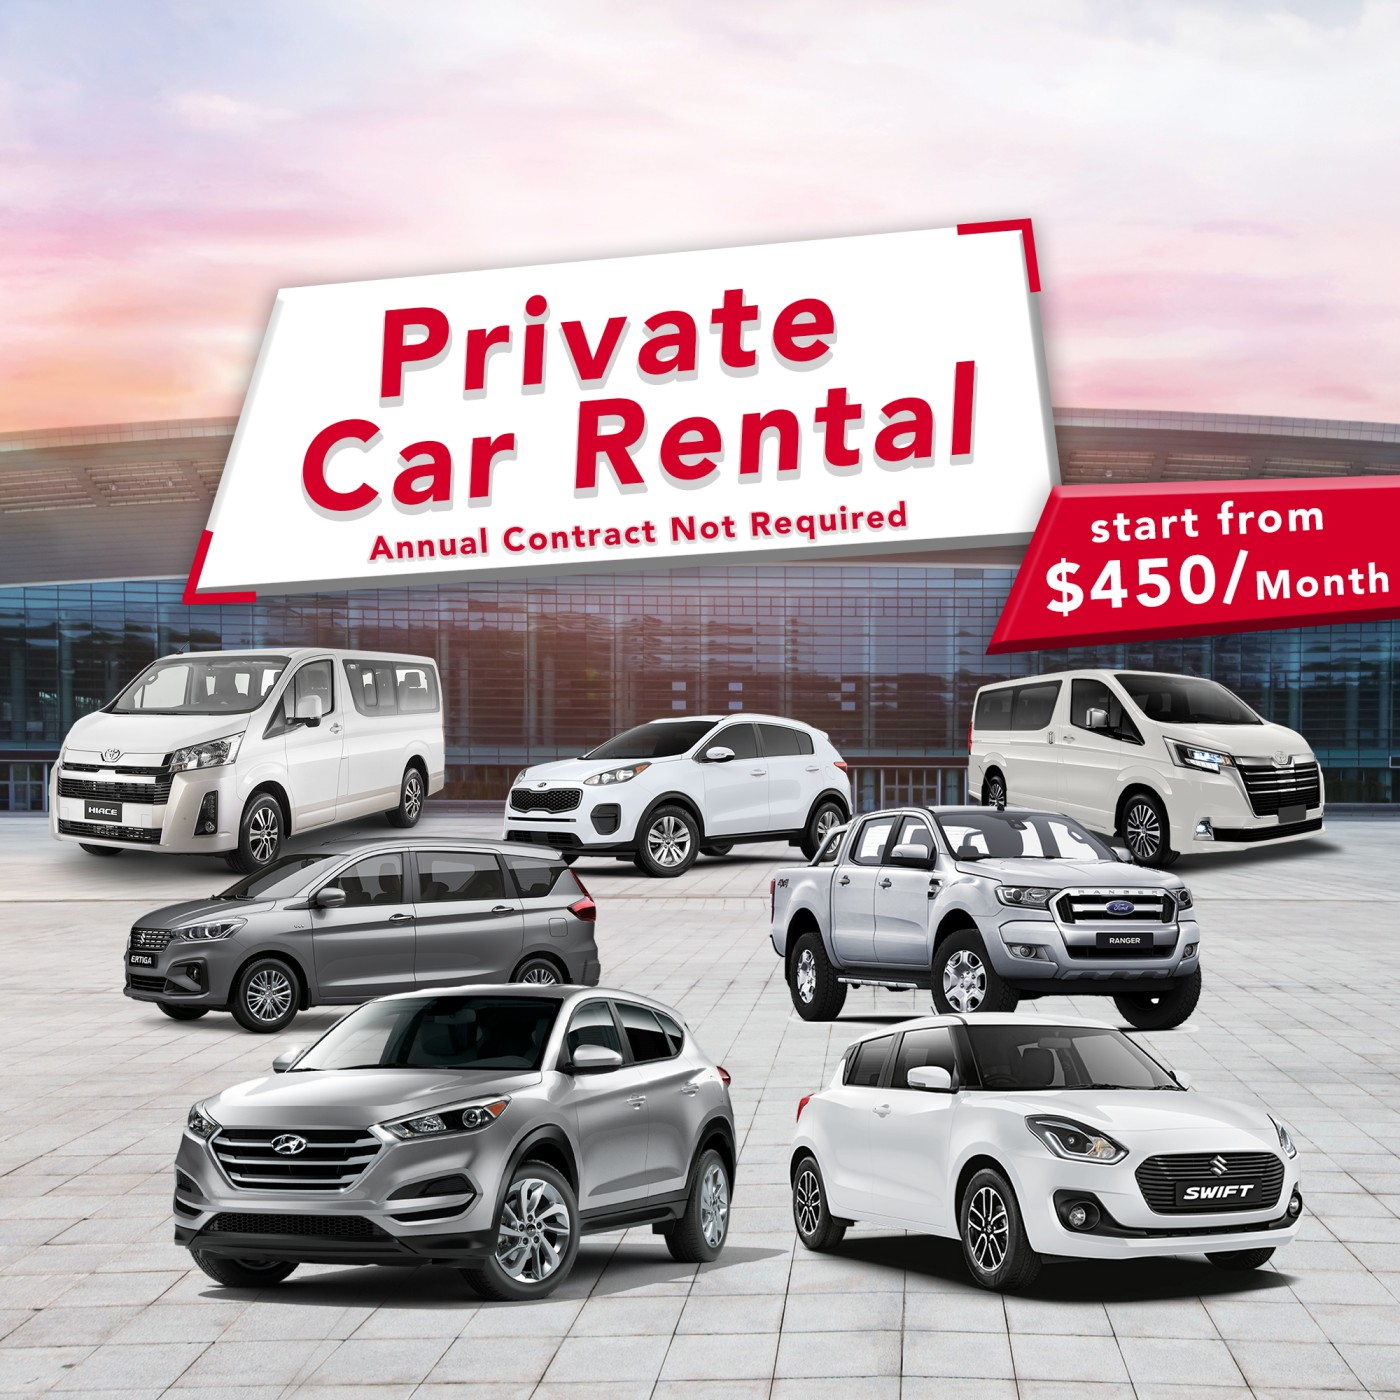 Car hire offers from Avis